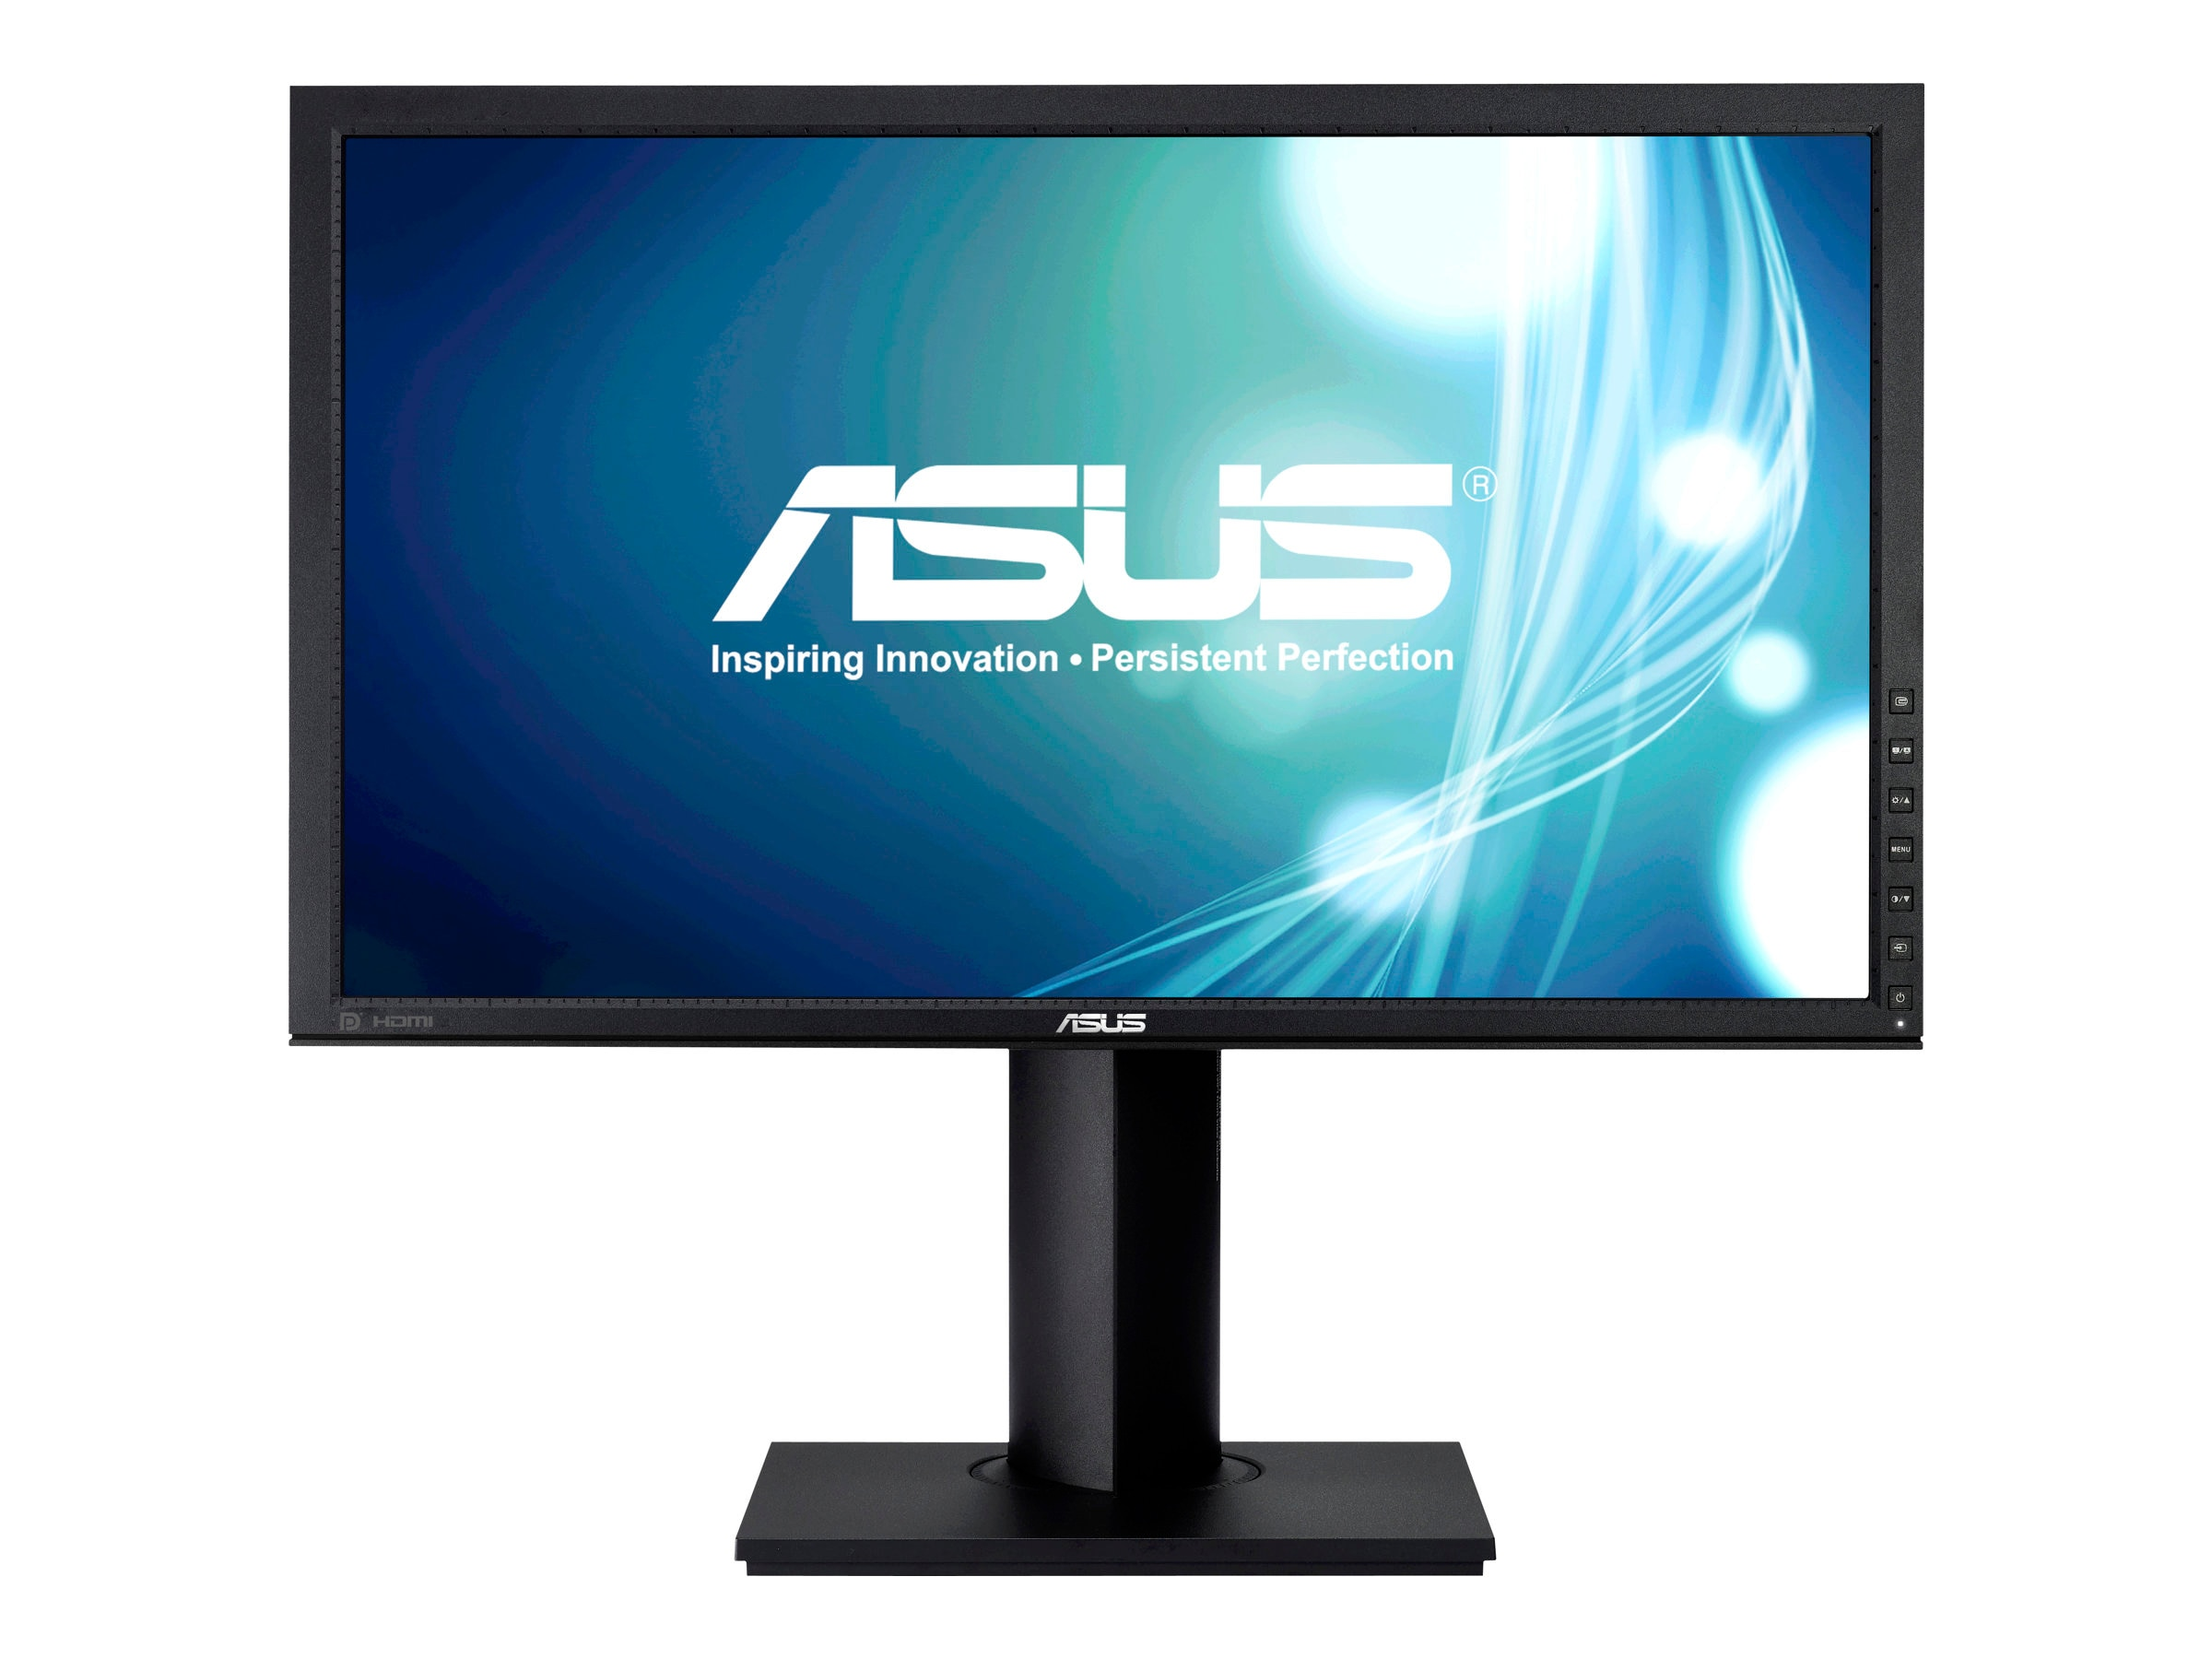 Asus 23 PB238Q Full HD LED-LCD Monitor, Black, PB238Q, 14661900, Monitors